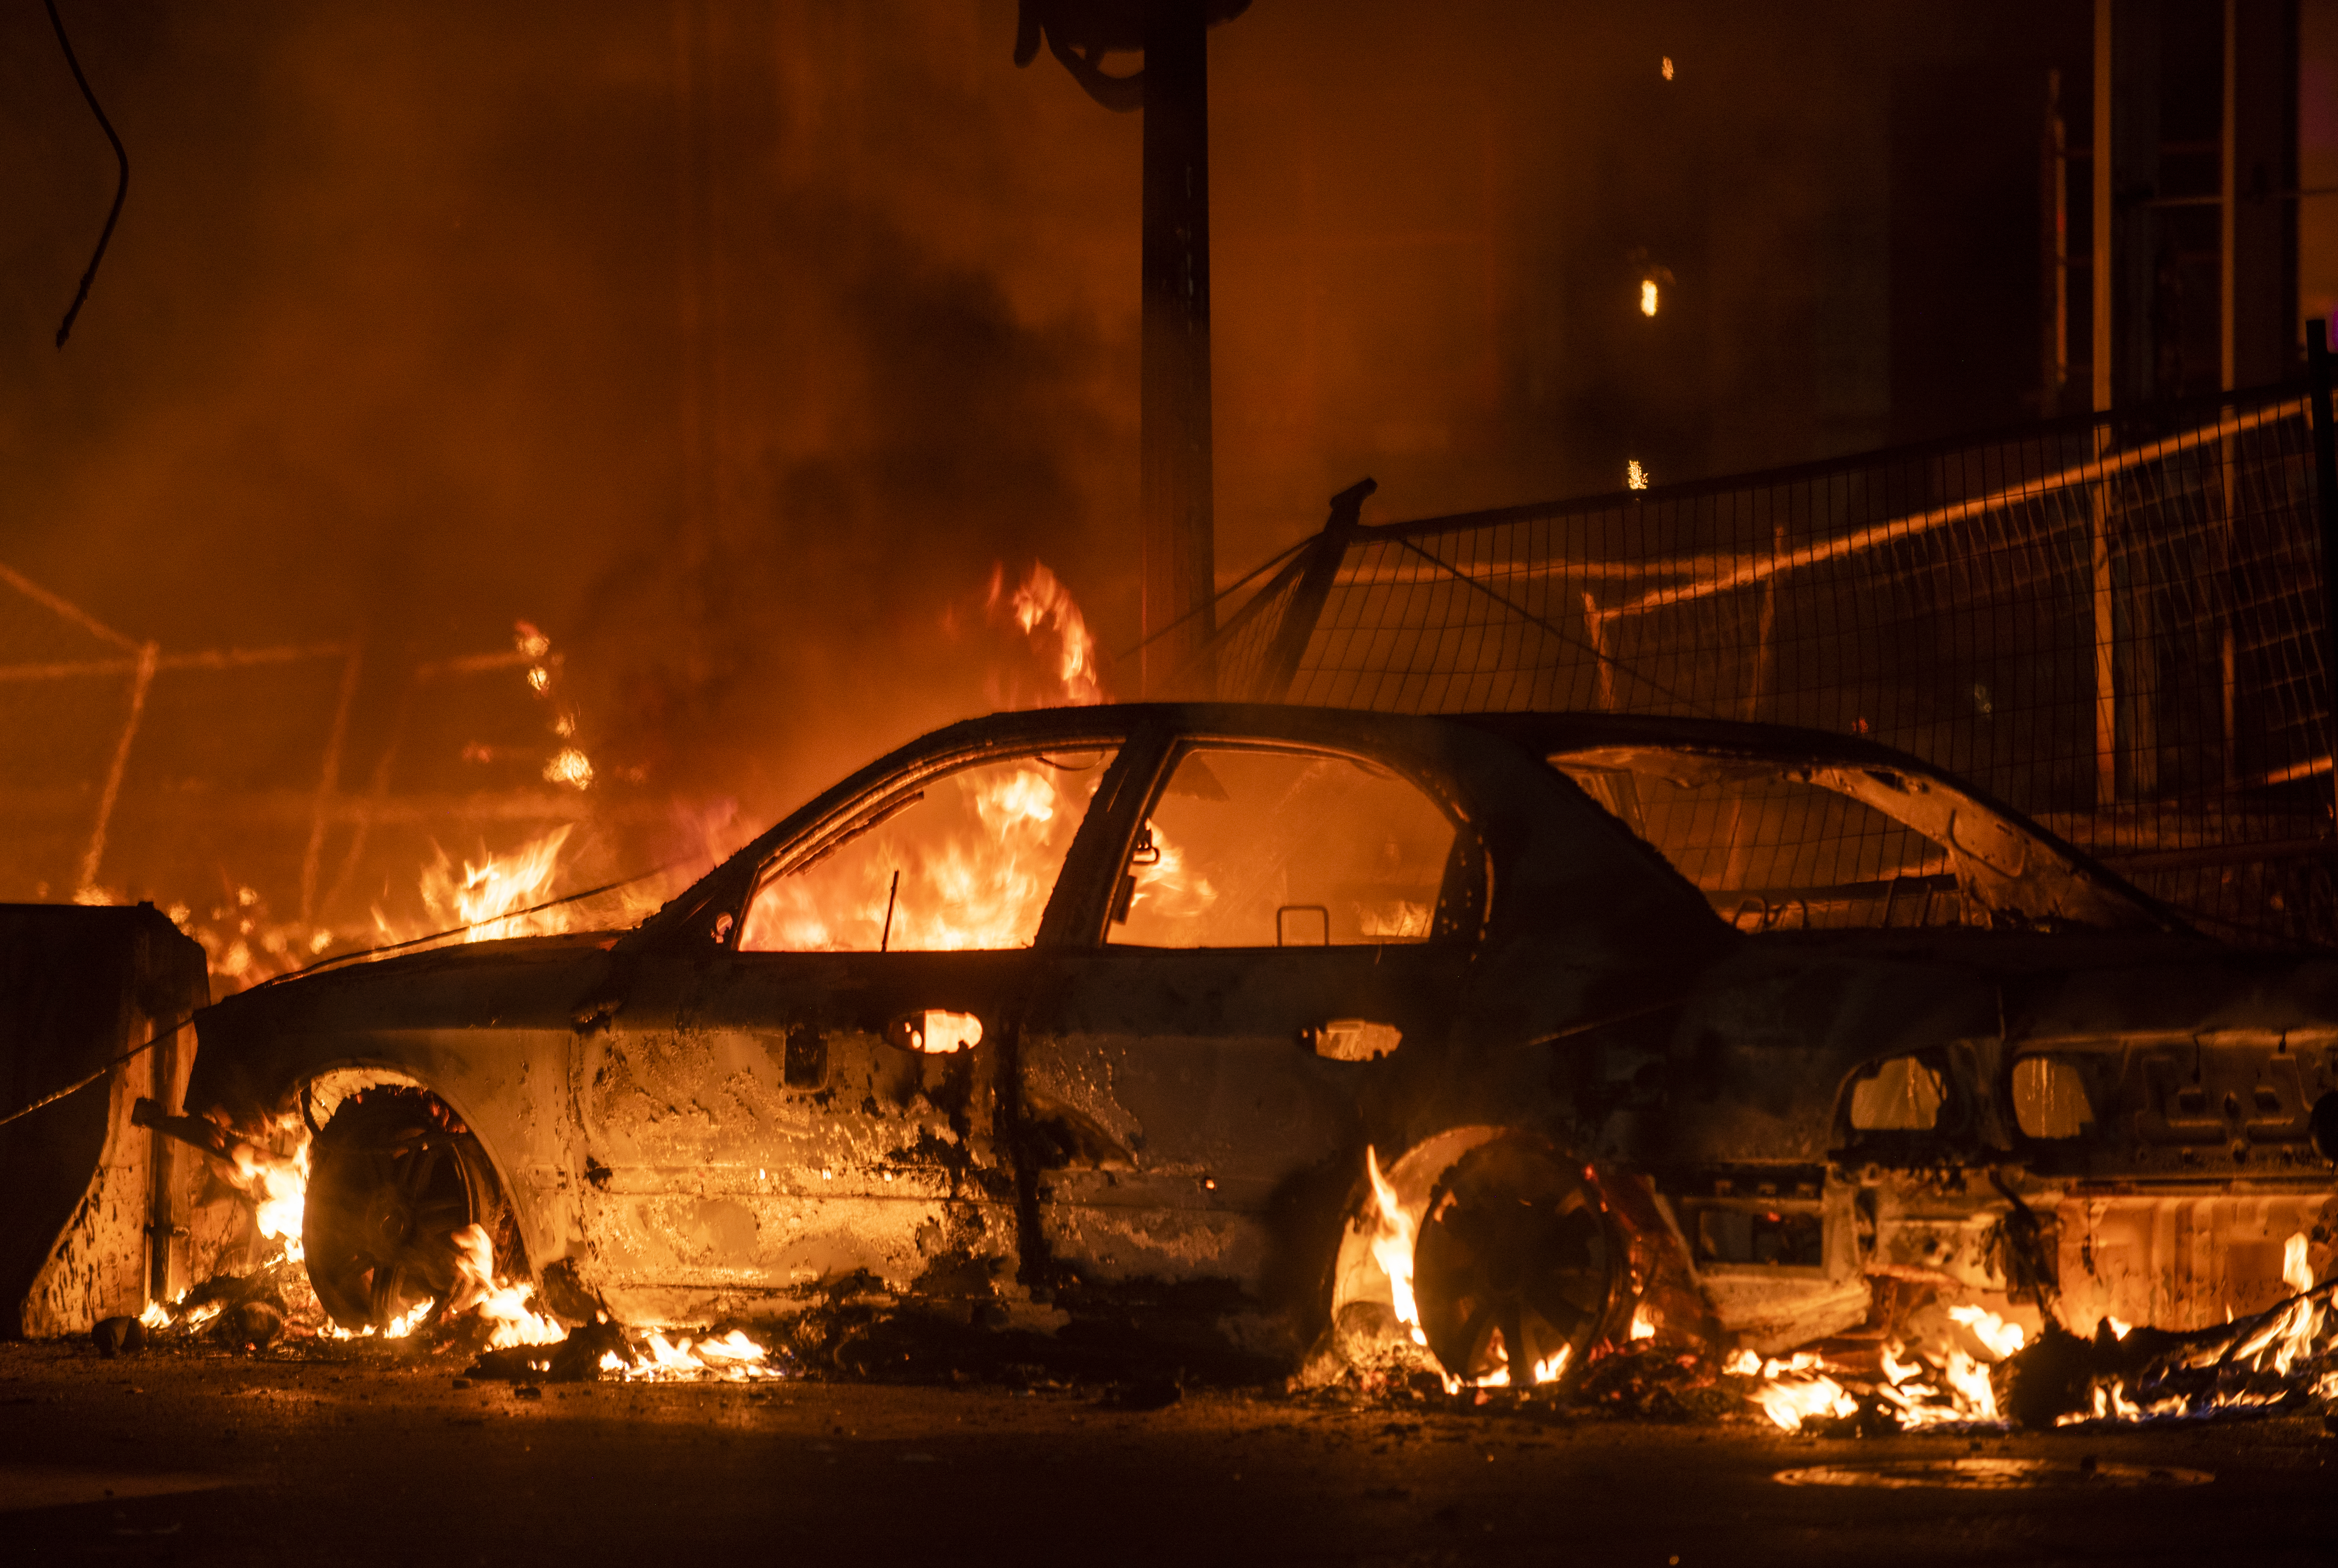 A car burns near the Third Police Precinct on May 27, 2020 in Minneapolis, Minnesota. (Stephen Maturen/Getty Images)